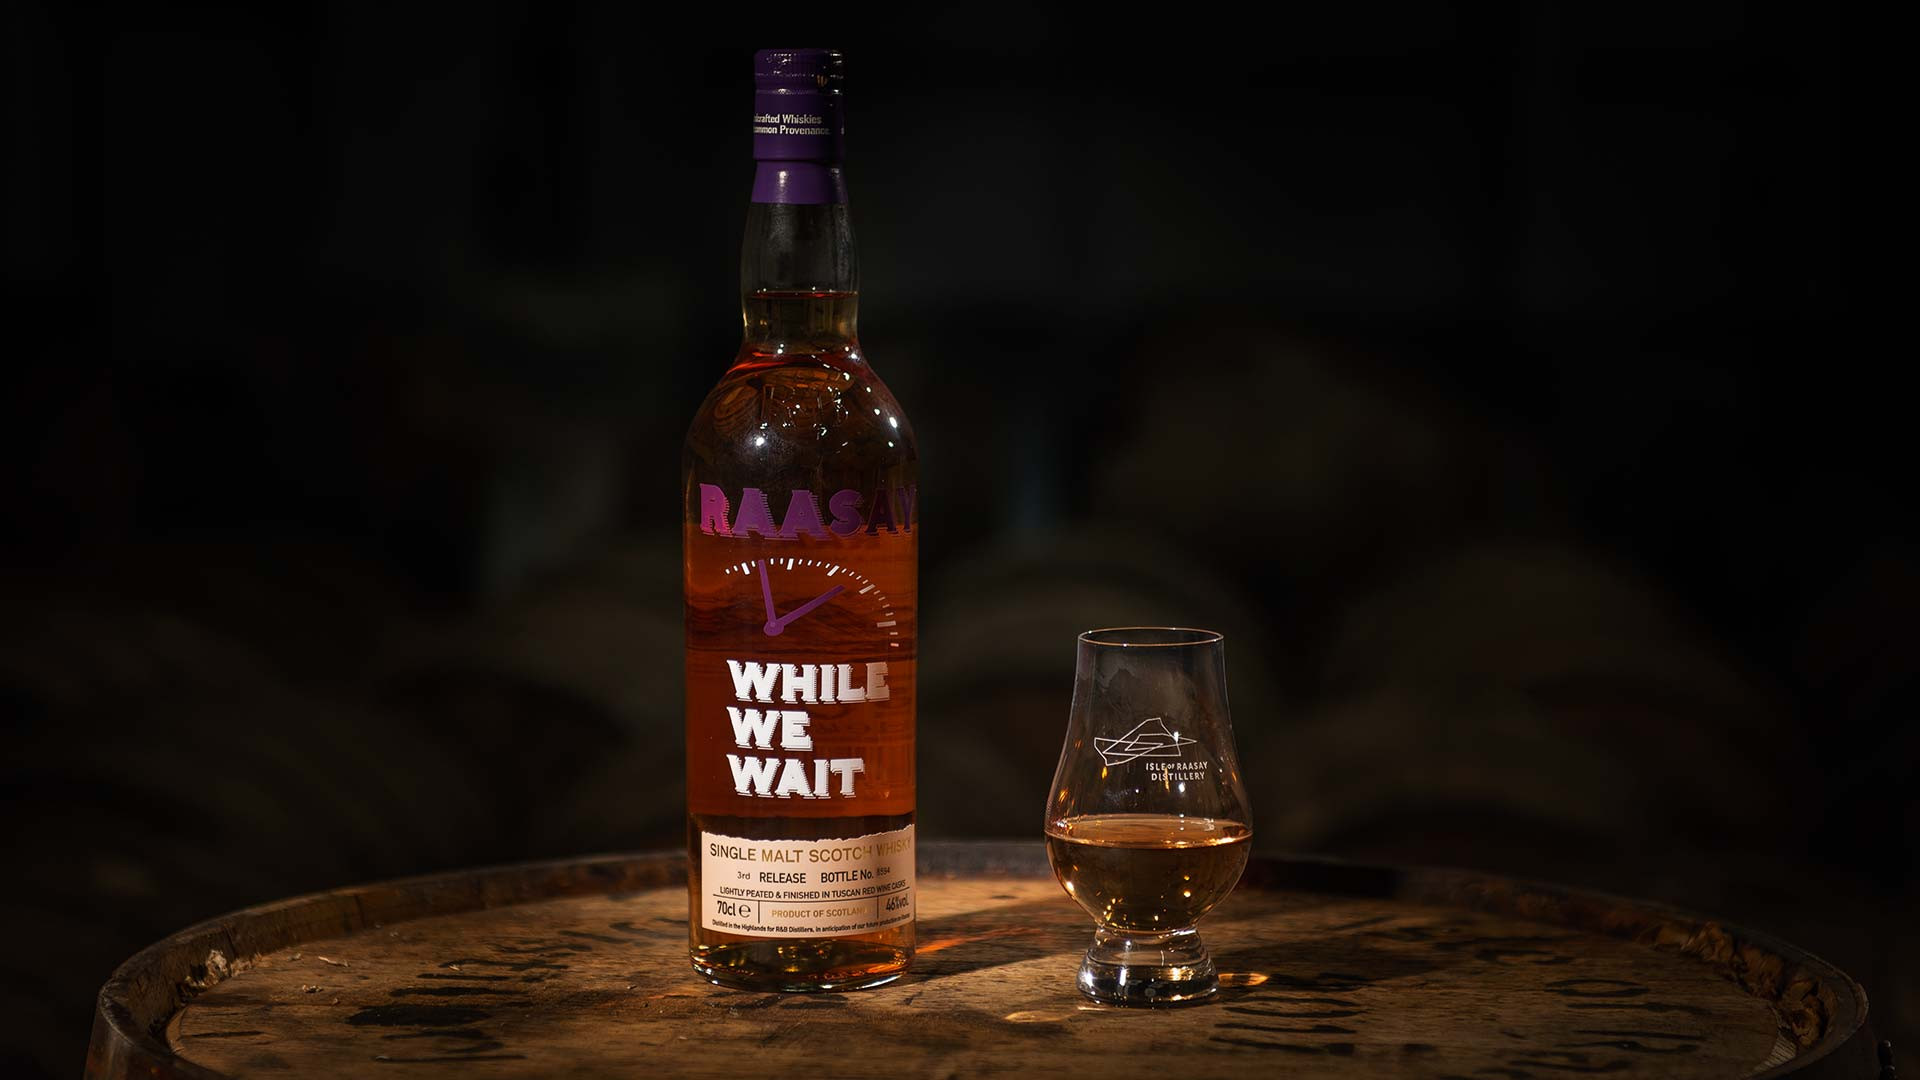 R&B's Raasay While We Wait whisky